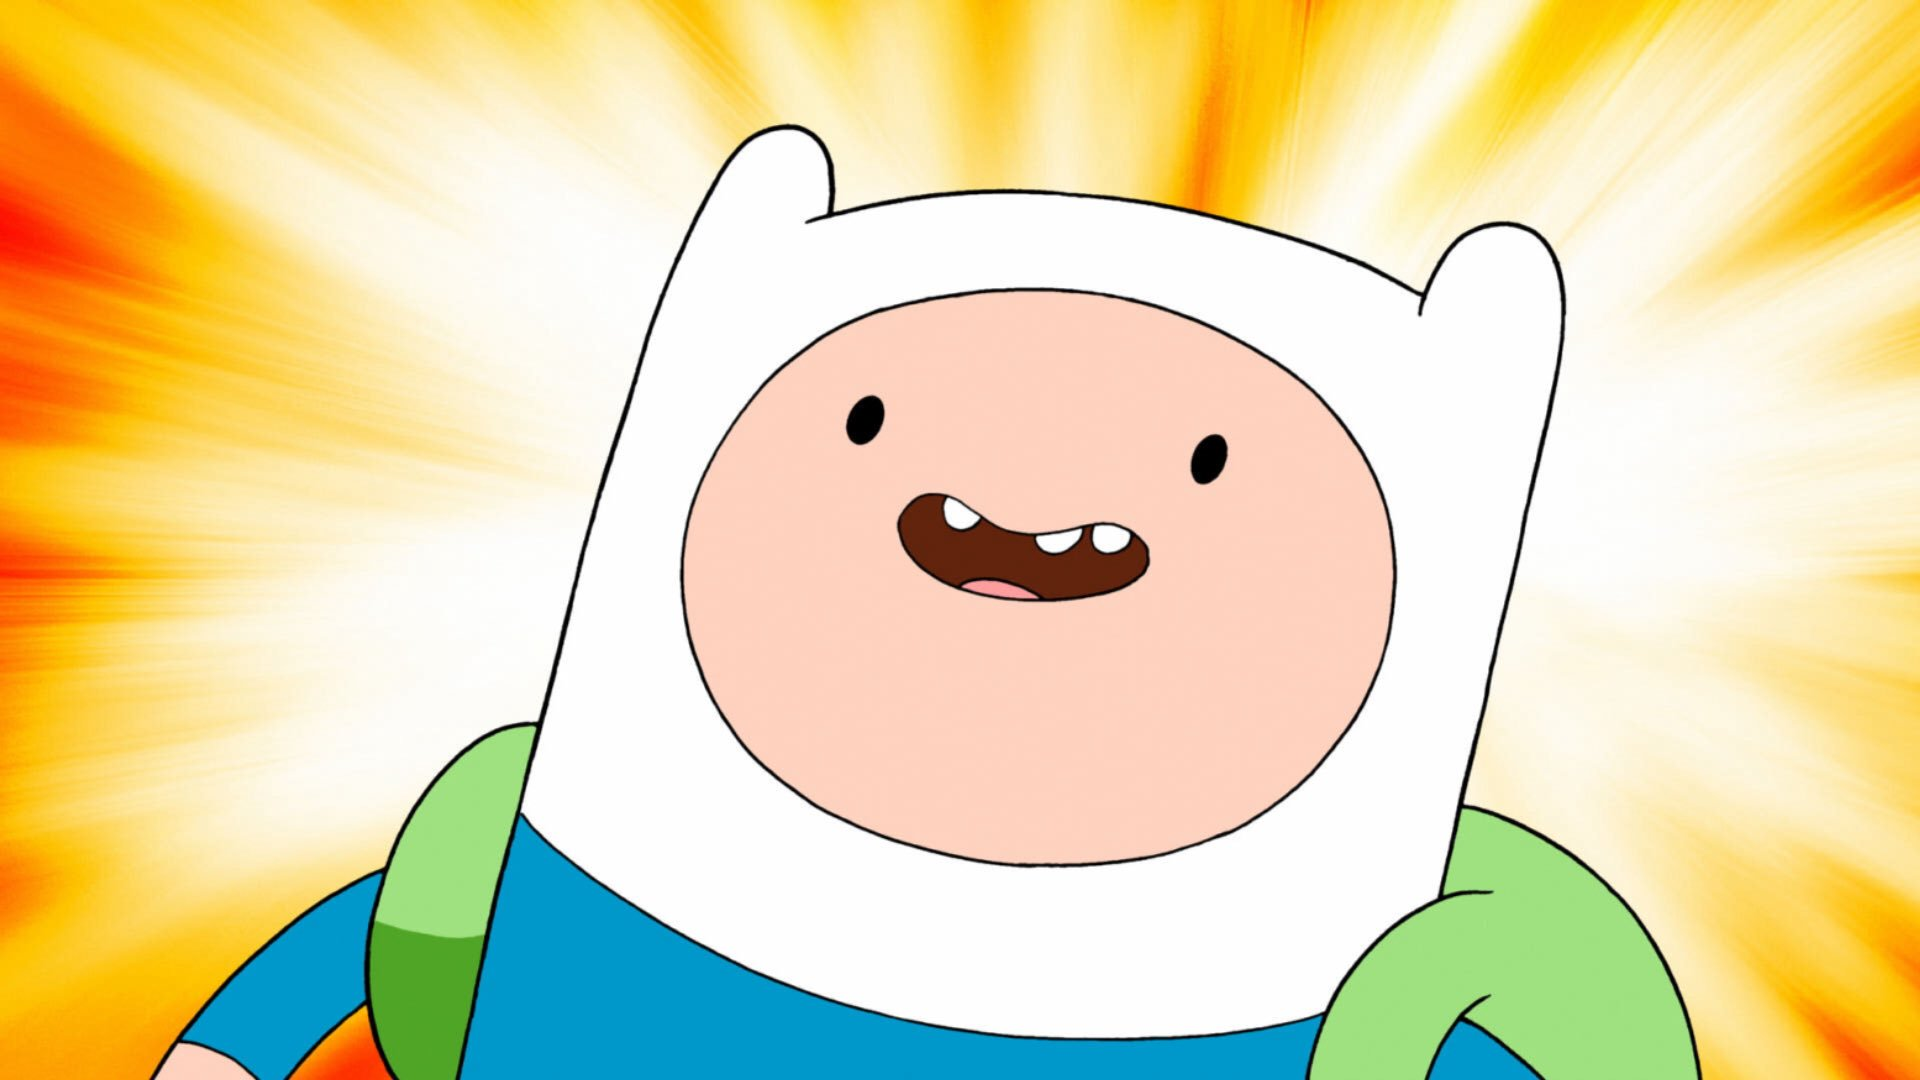 File:Happyfinn.jpg